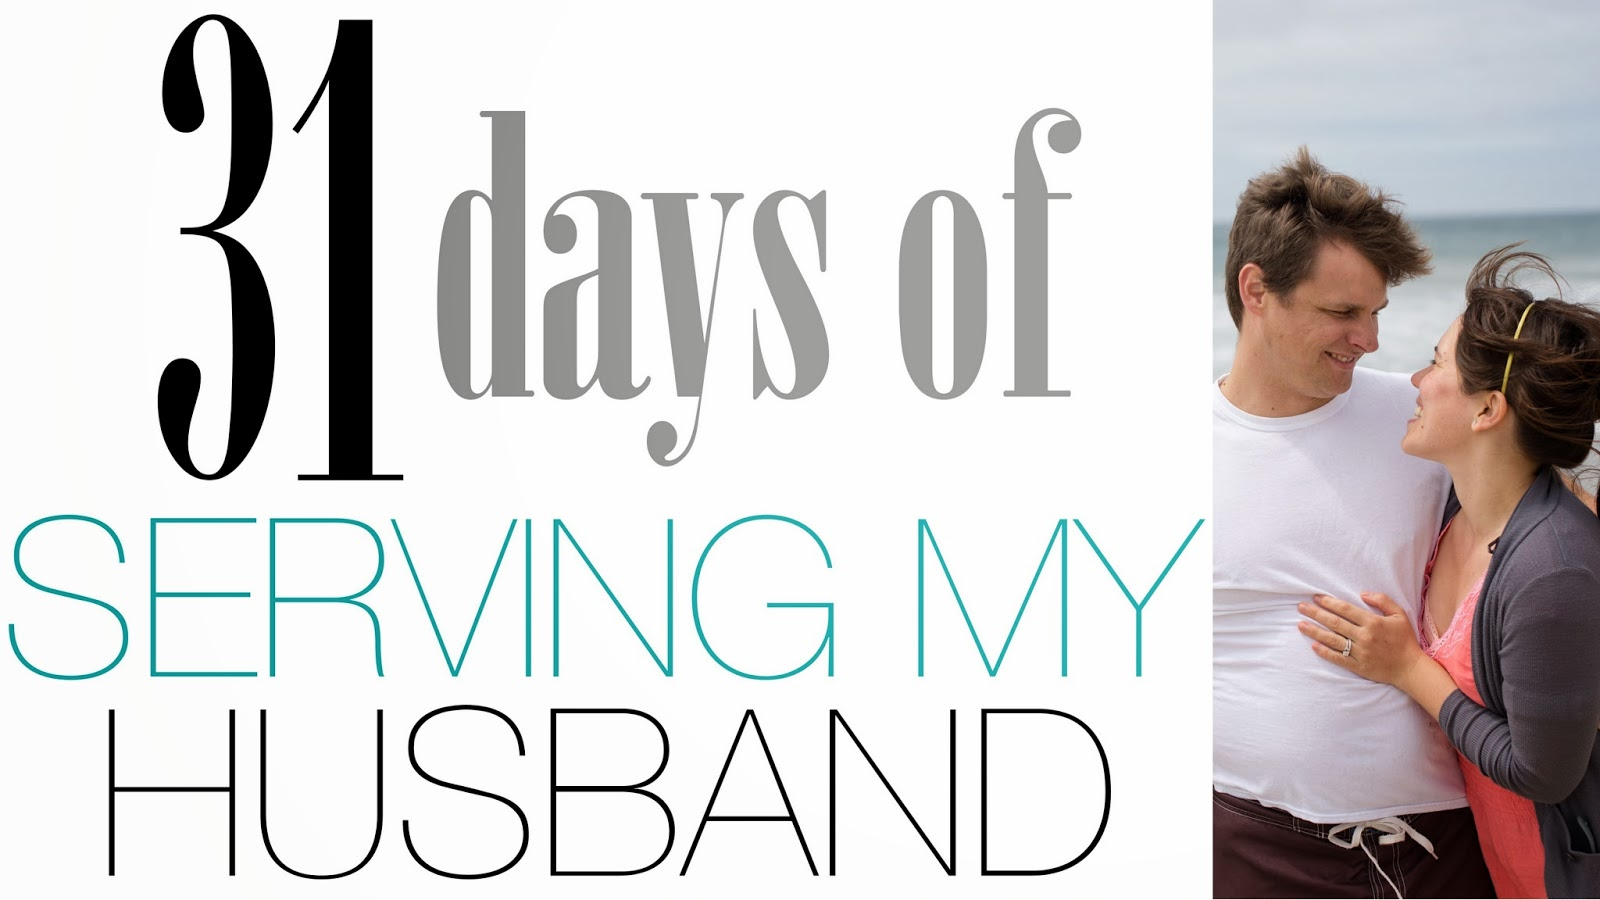 I Love My Husband Quotes Domestic Fashionista 31 Days Of Serving My Husband